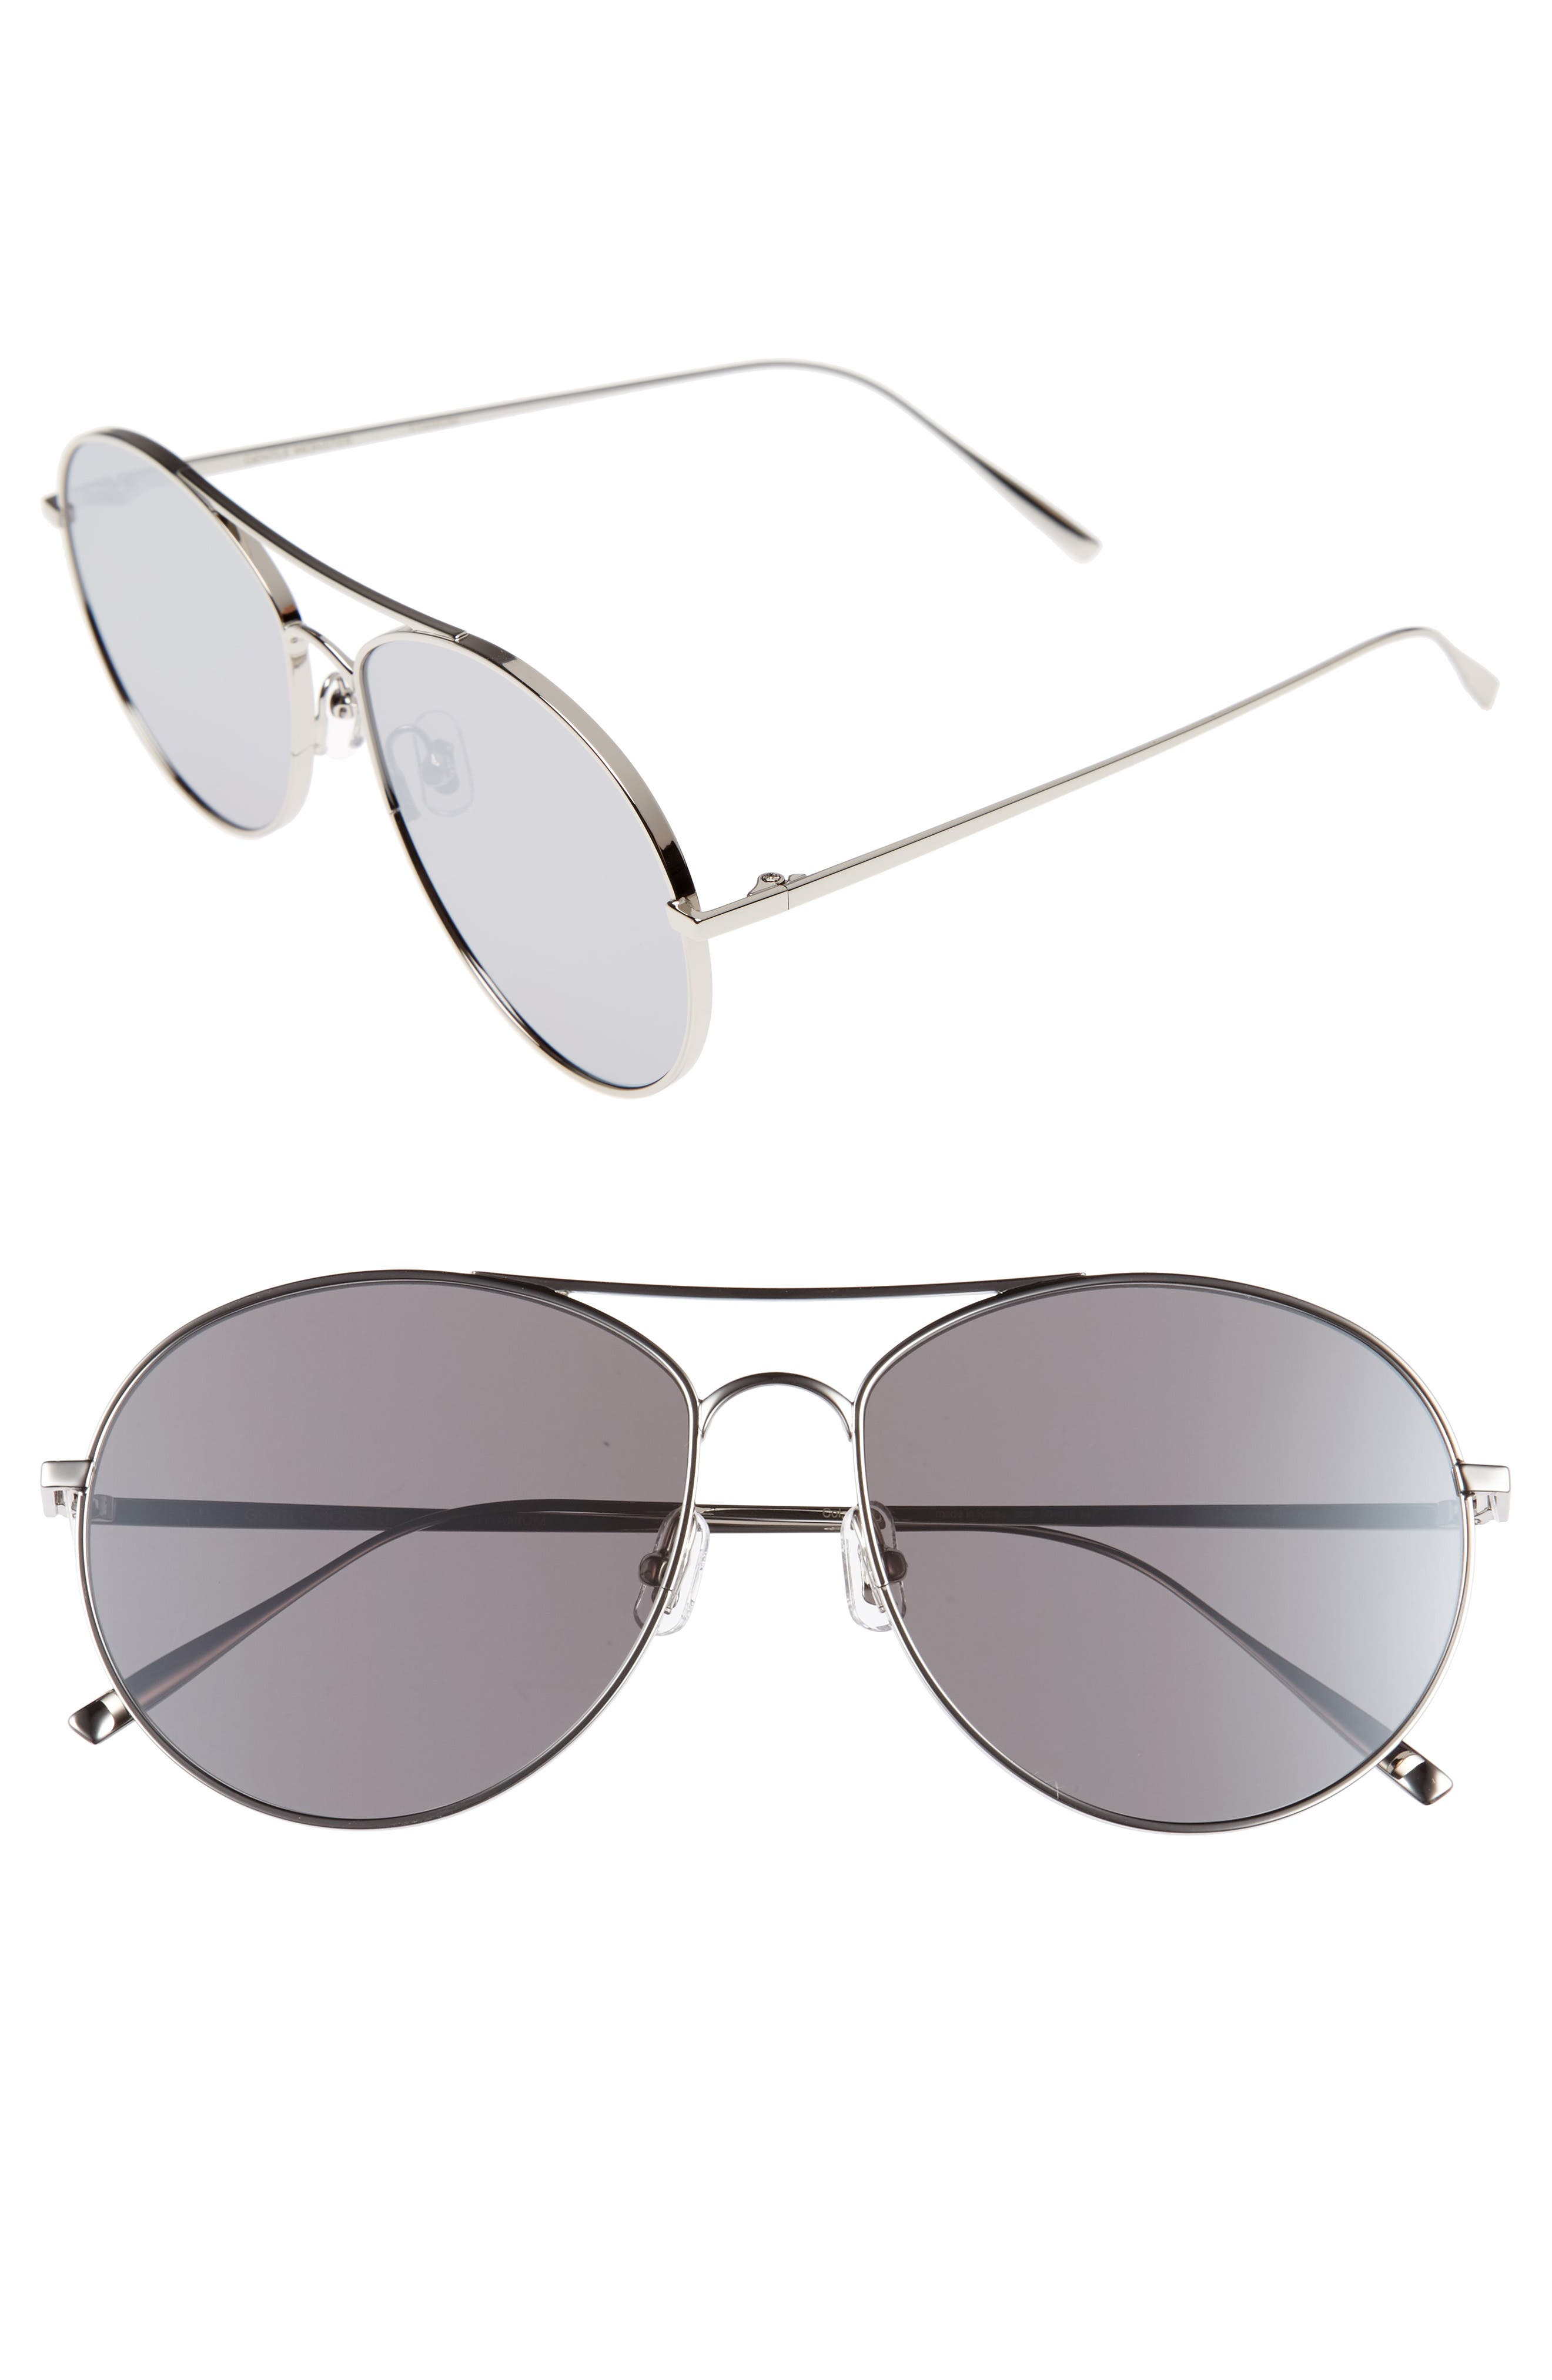 Ranny Ring 58mm Aviator Sunglasses,                         Main,                         color, Silver Mirror